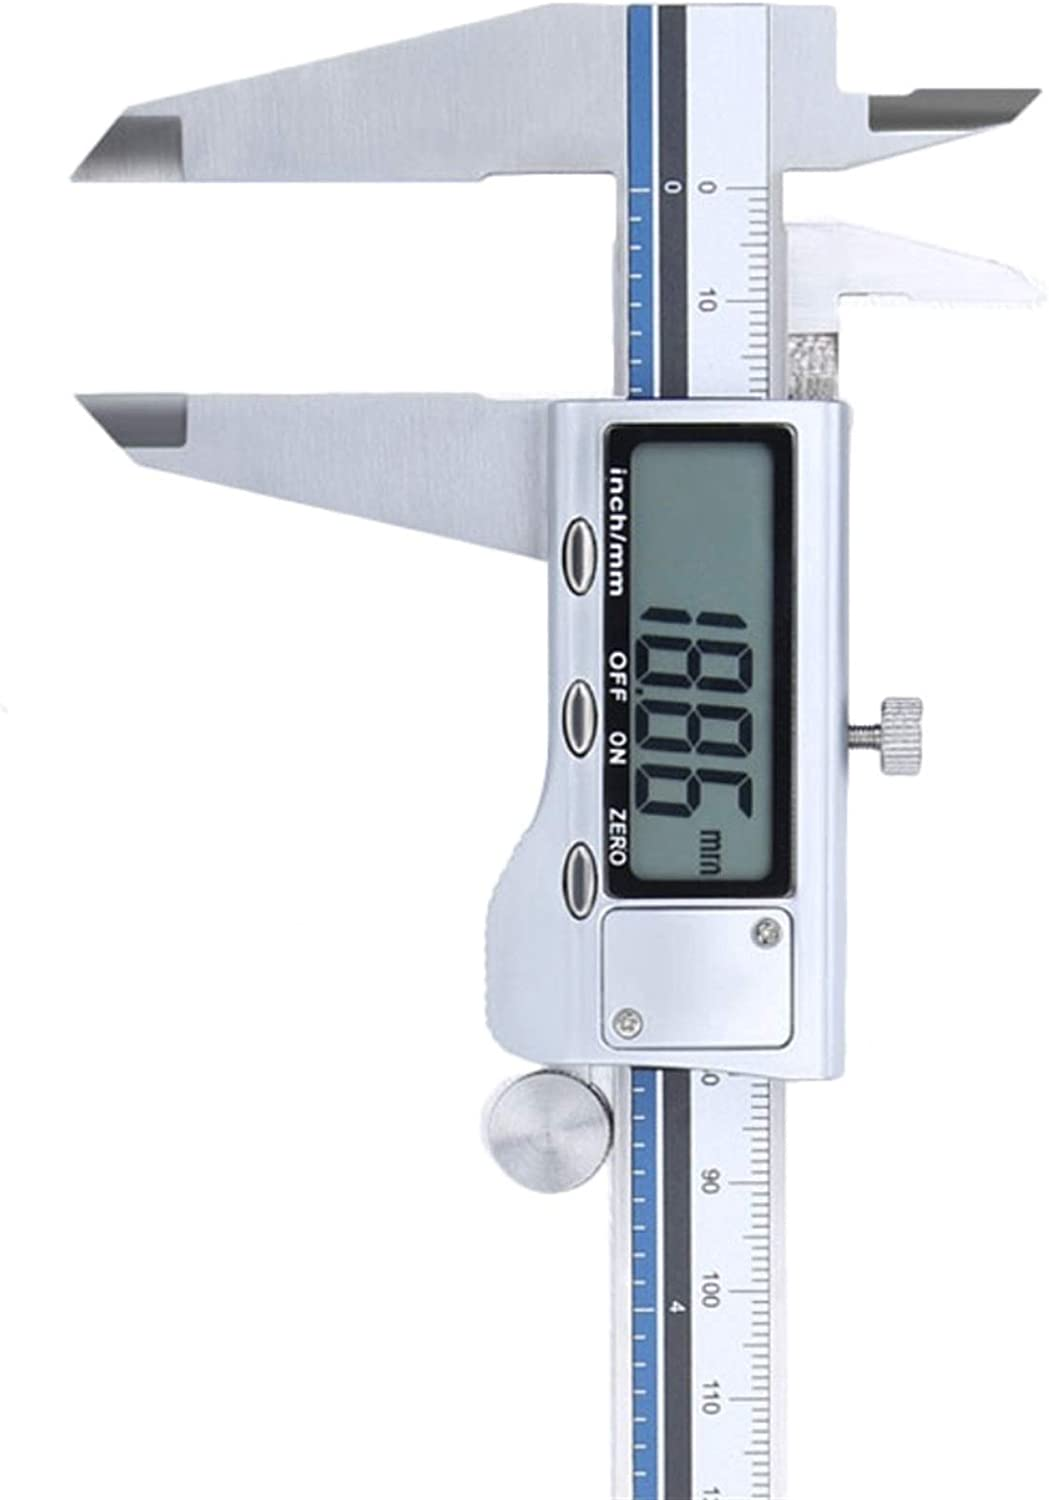 TXXM Calipers Electronic Max 46% National products OFF Digital Caliper Steel Stainless Vernier